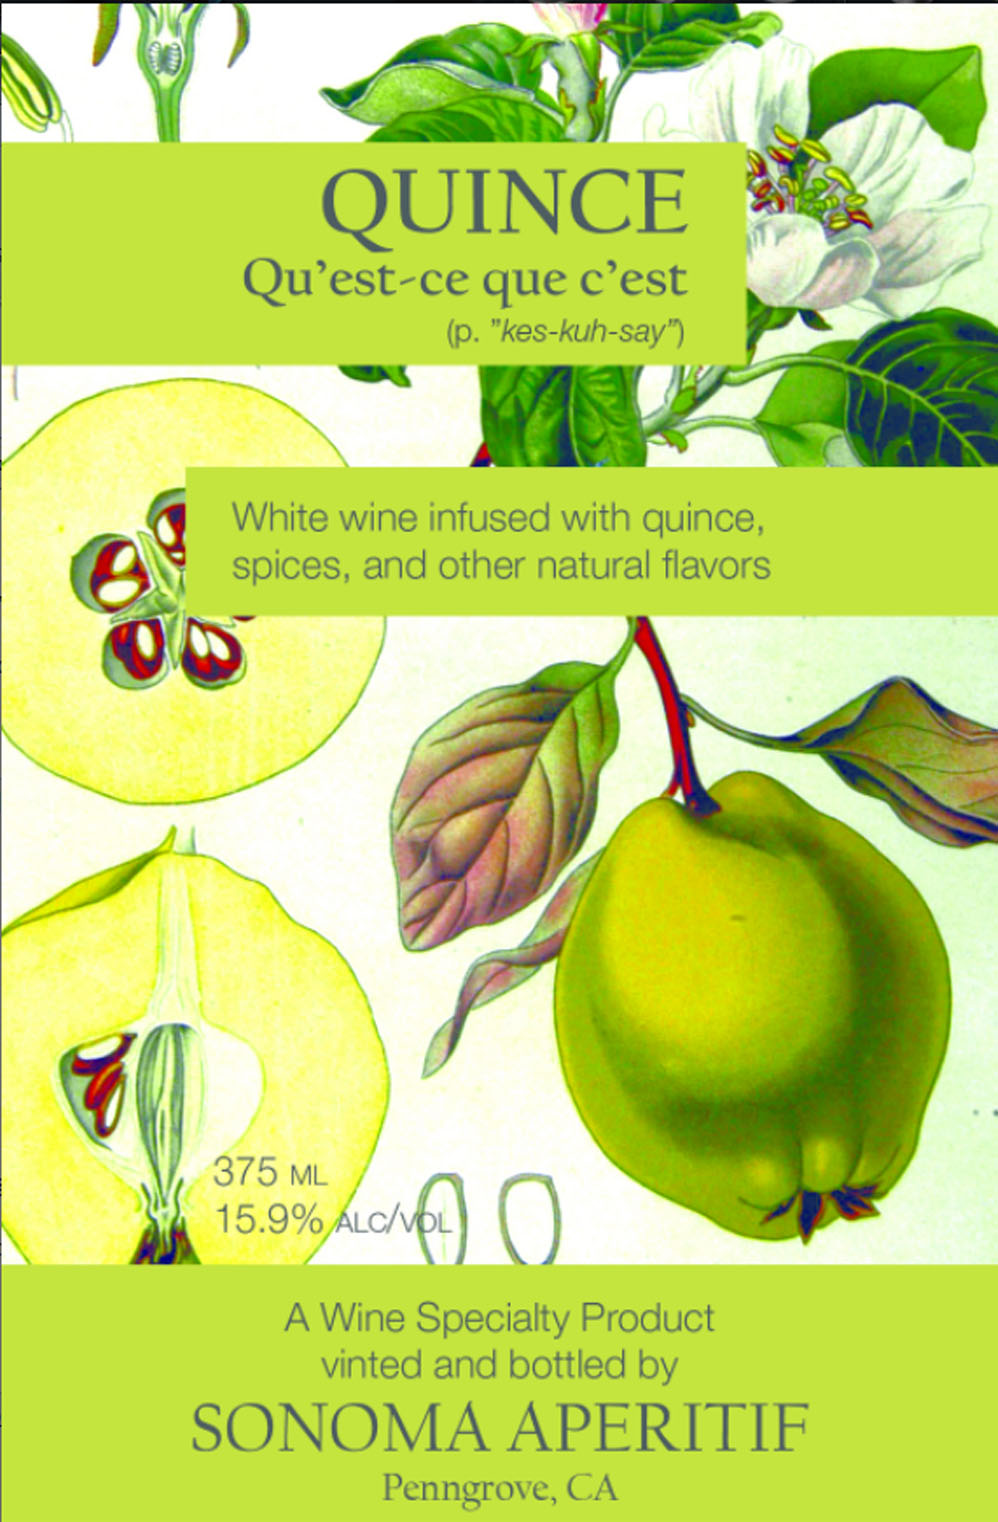 Quince label